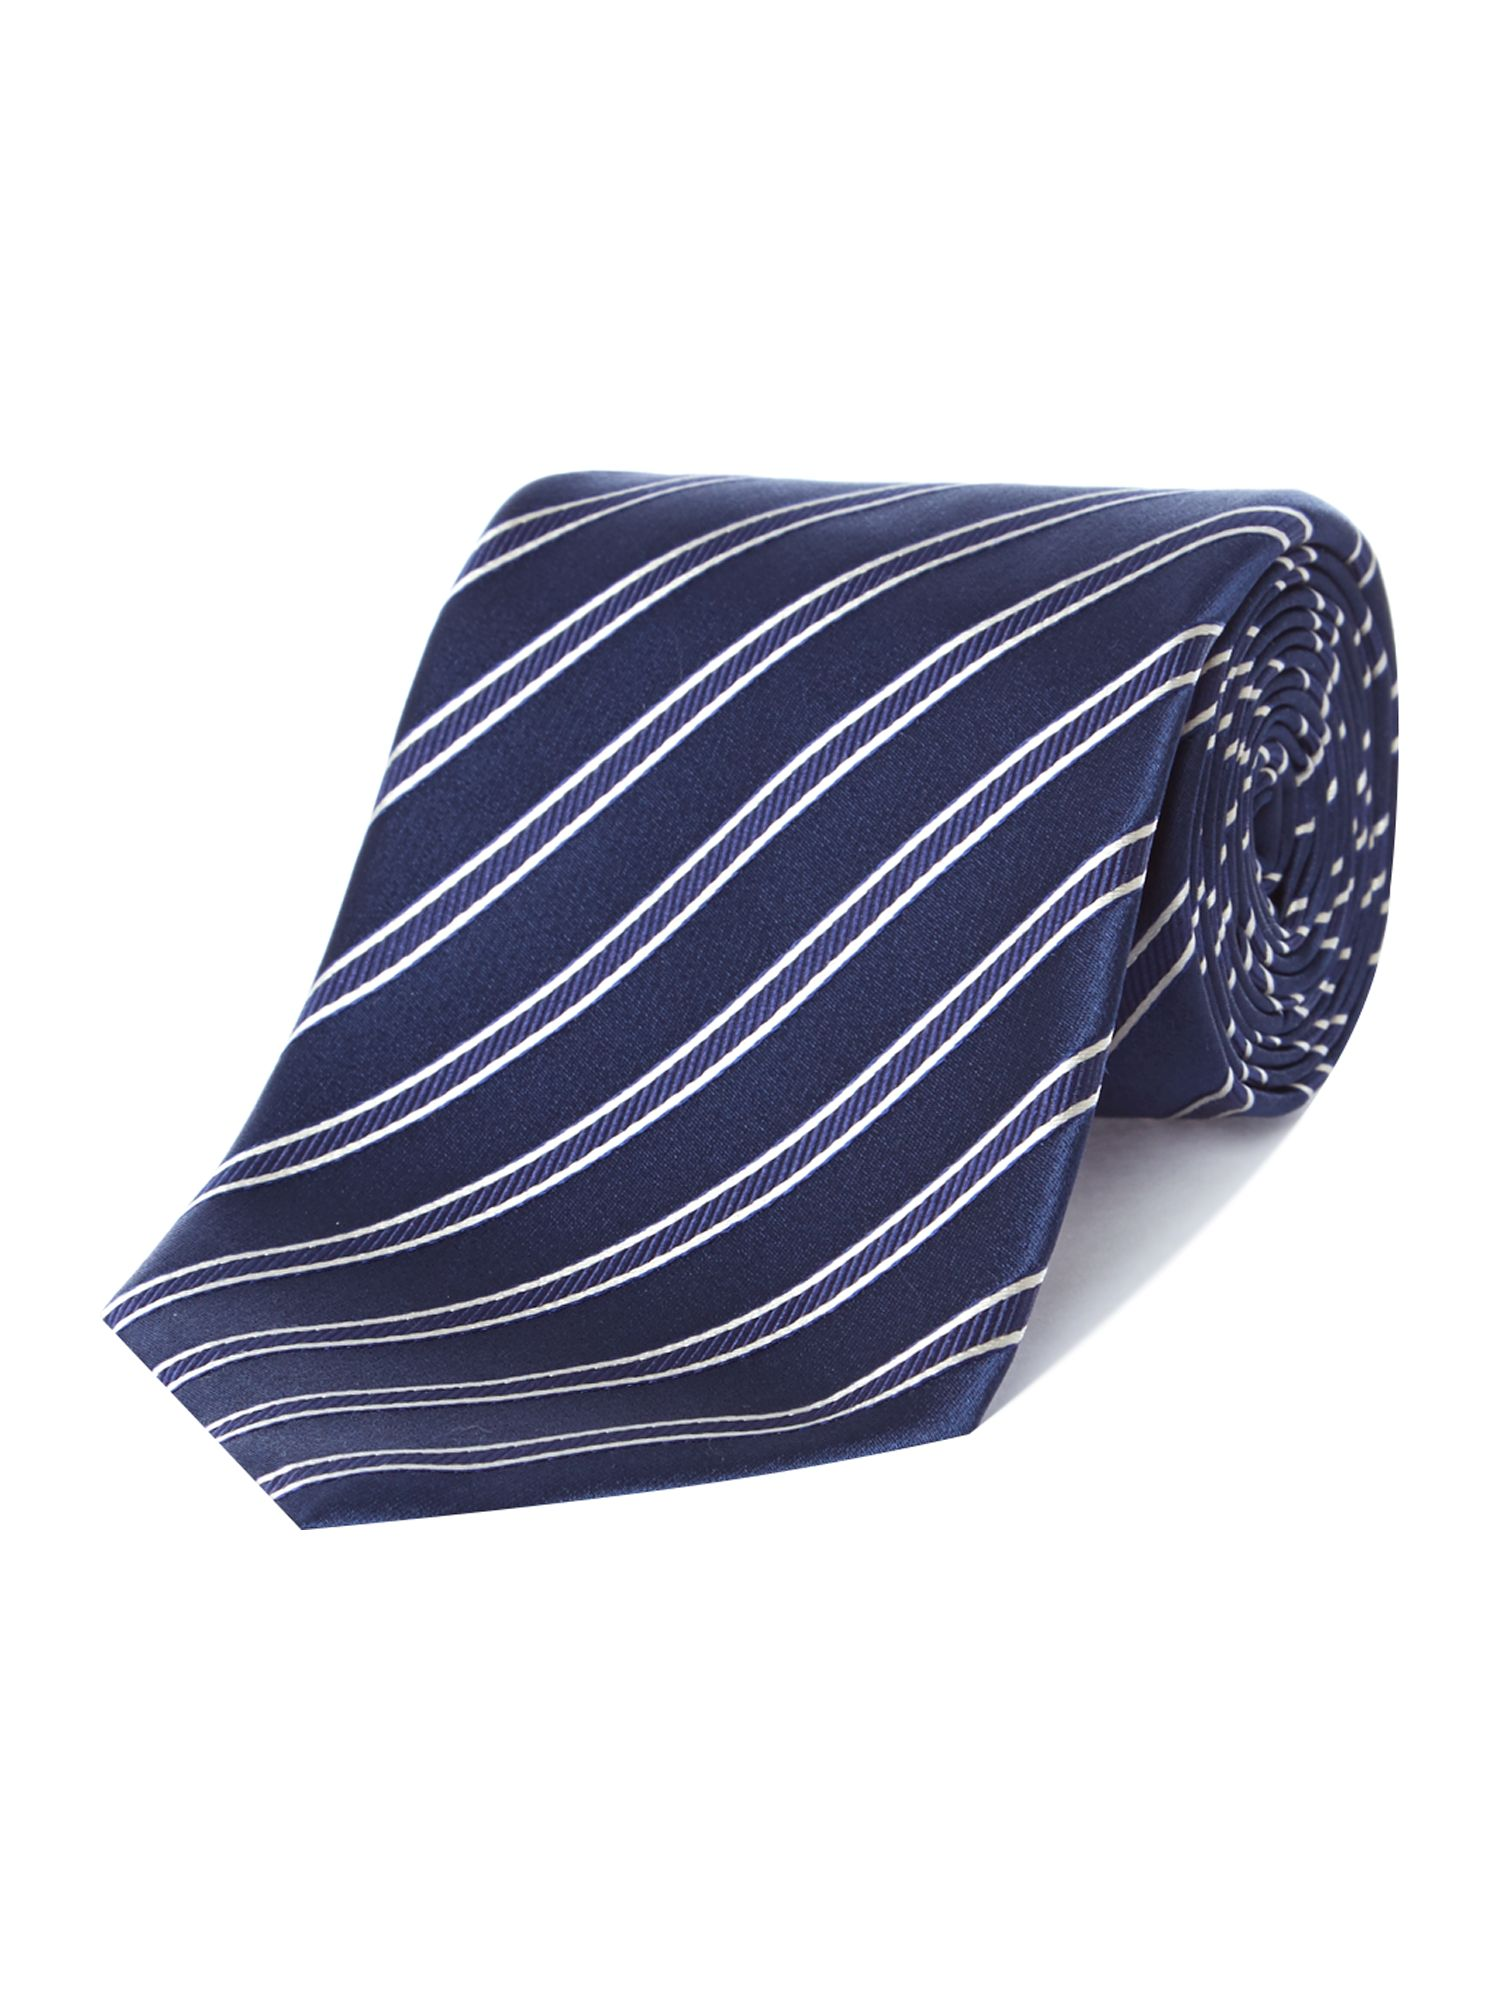 Regular stripe tie